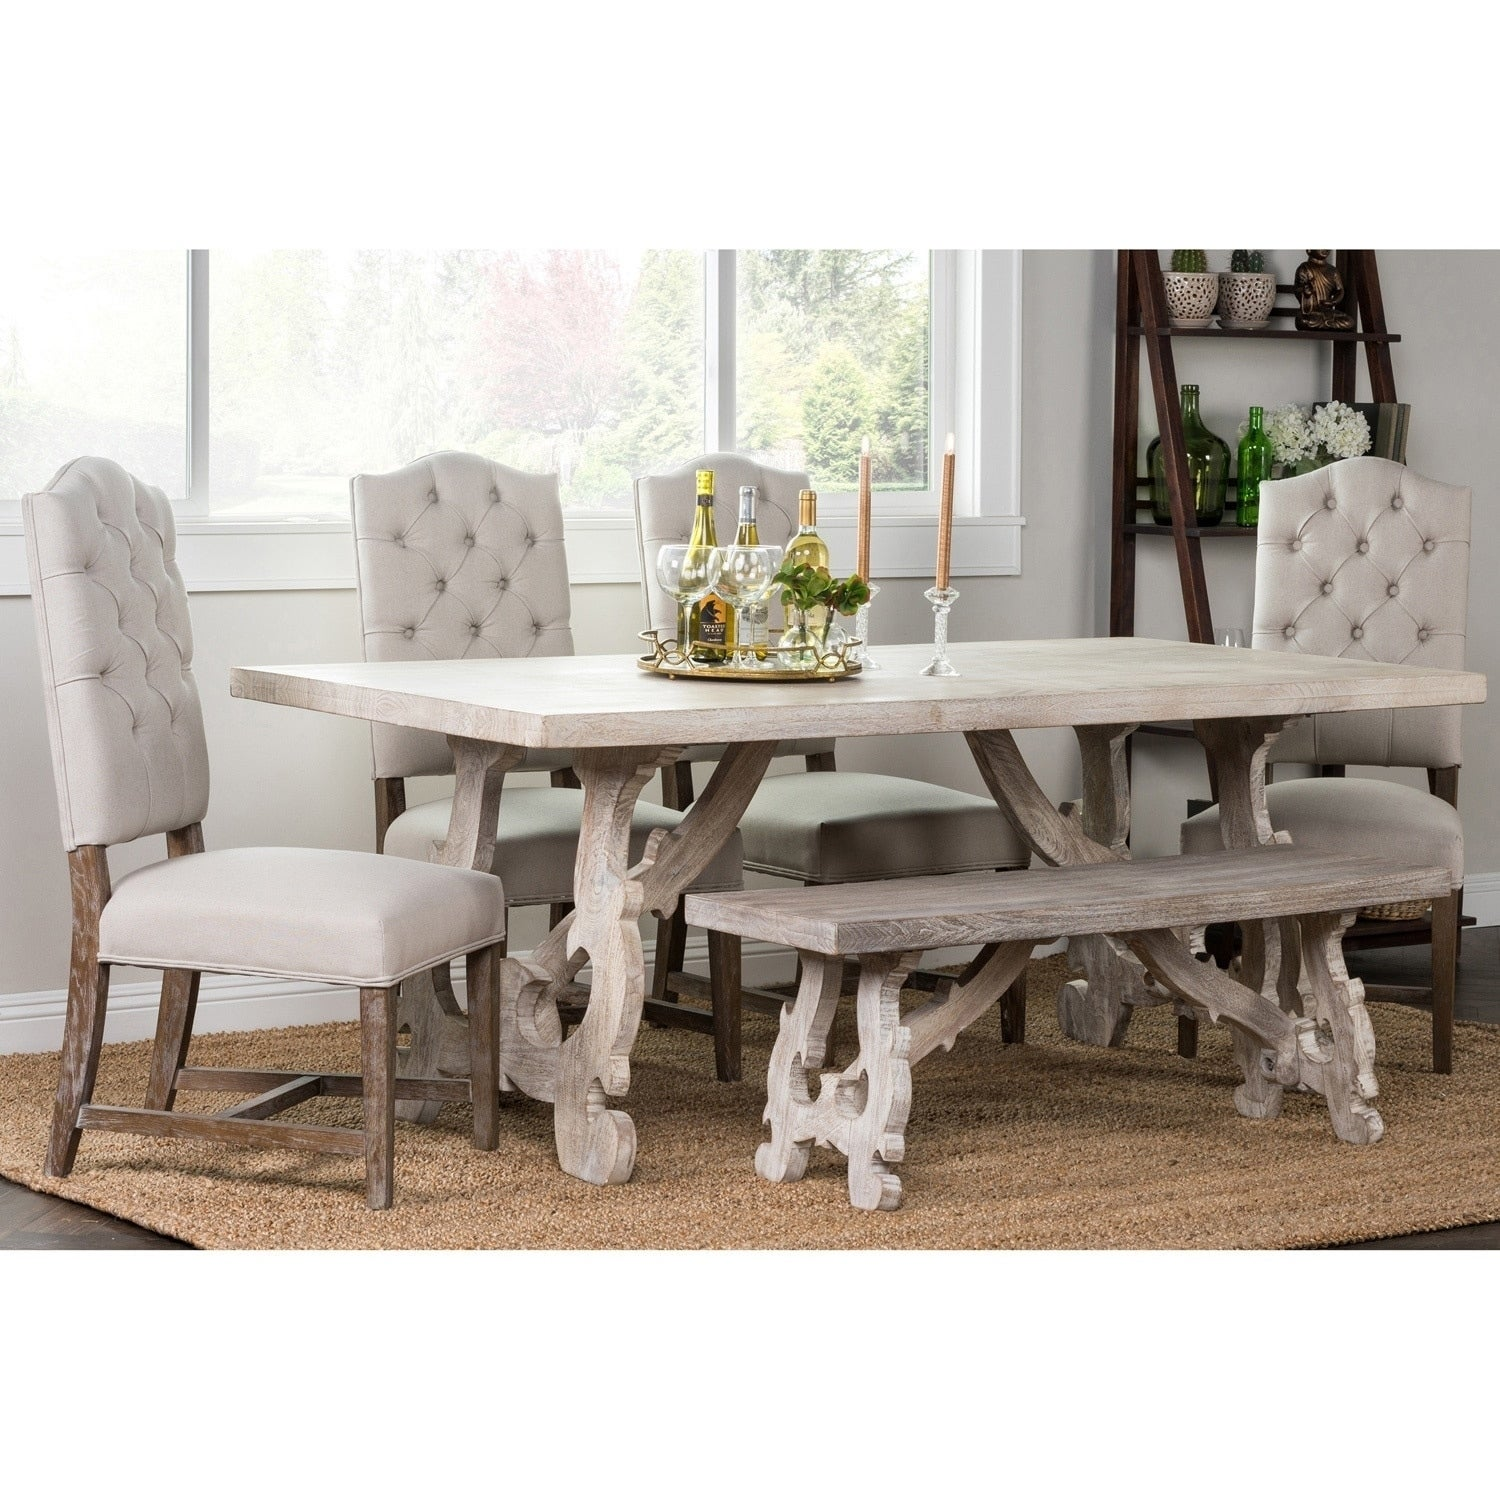 Shop Elliott Rustic Hand Crafted 76 Inch Dining Table By Kosas Home Overstock 9811204